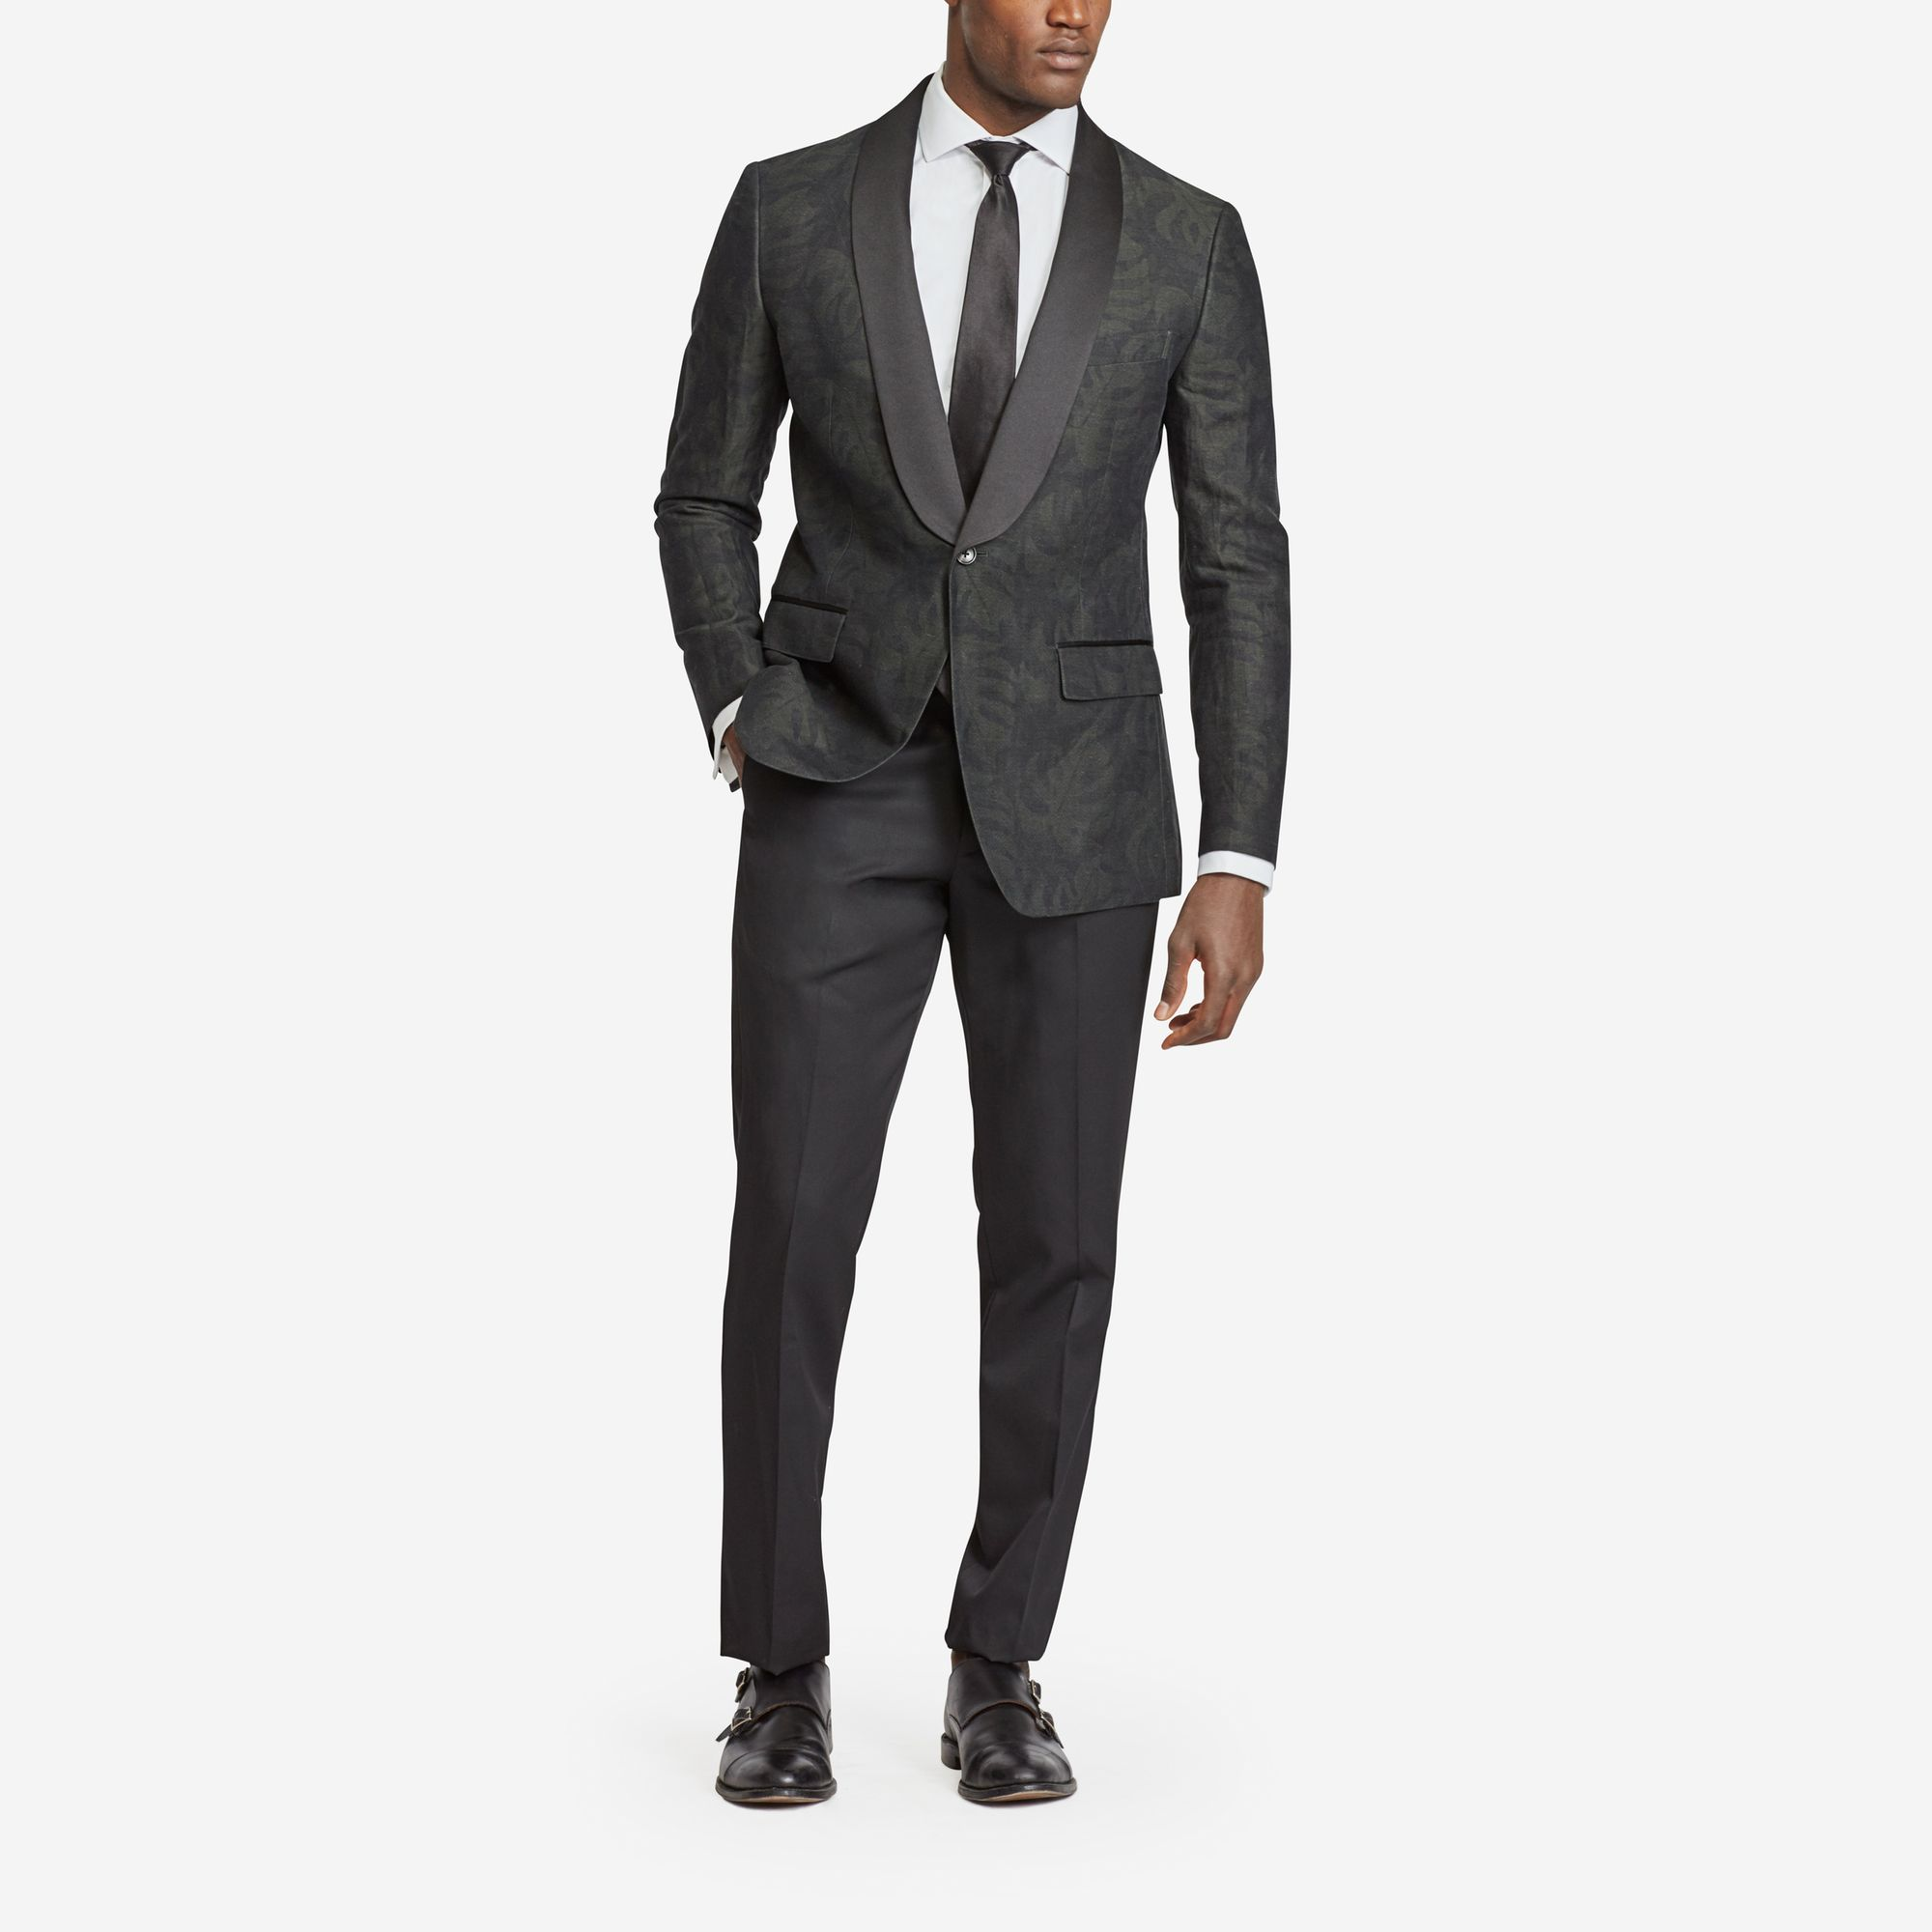 The Capstone Tuxedo  Black-tie? Own it. Weddings, charity balls, international espionage—when you need to look your absolute best, The Capstone Tuxedo is ready and waiting. - © Bonobos